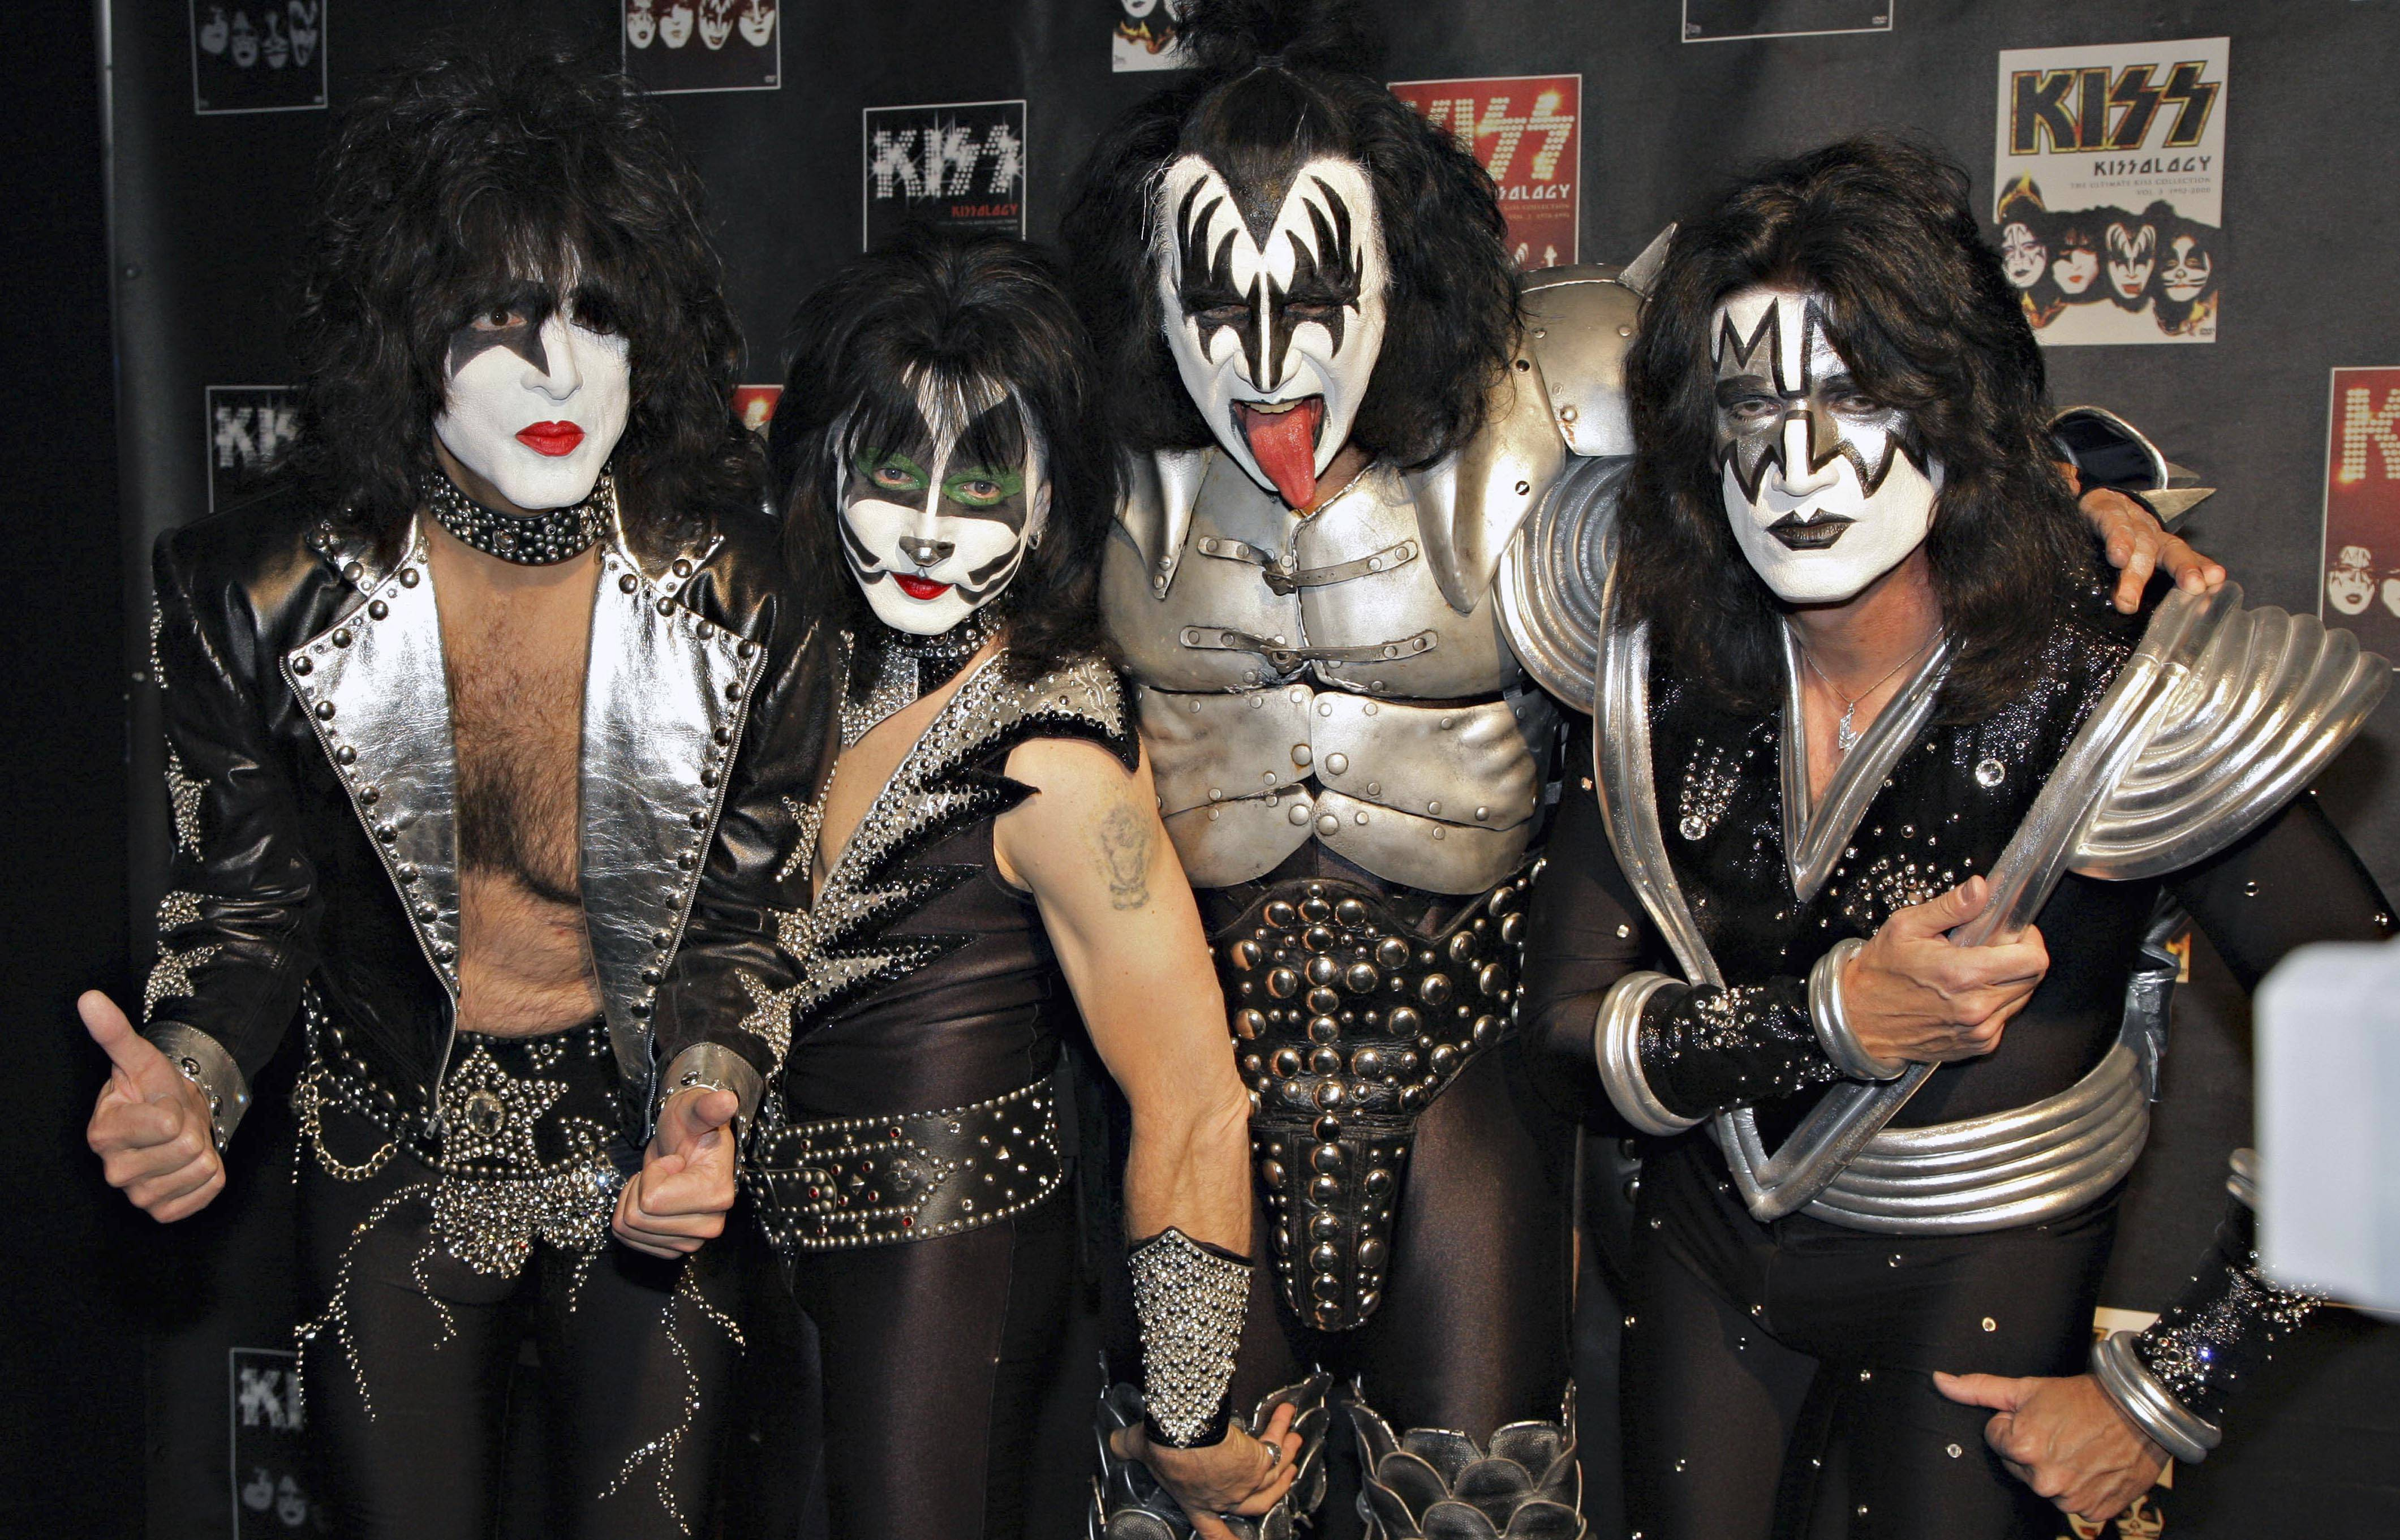 Members of Kiss, from left, Paul Stanley, Eric Singer, Gene Simmons and Tommy Thayer. Kiss is angry with the Rock and Roll Hall of Fame over the organization's decision only to induct original members Paul Stanley, Gene Simmons, Peter Criss and Ace Frehley while excluding members who joined later.